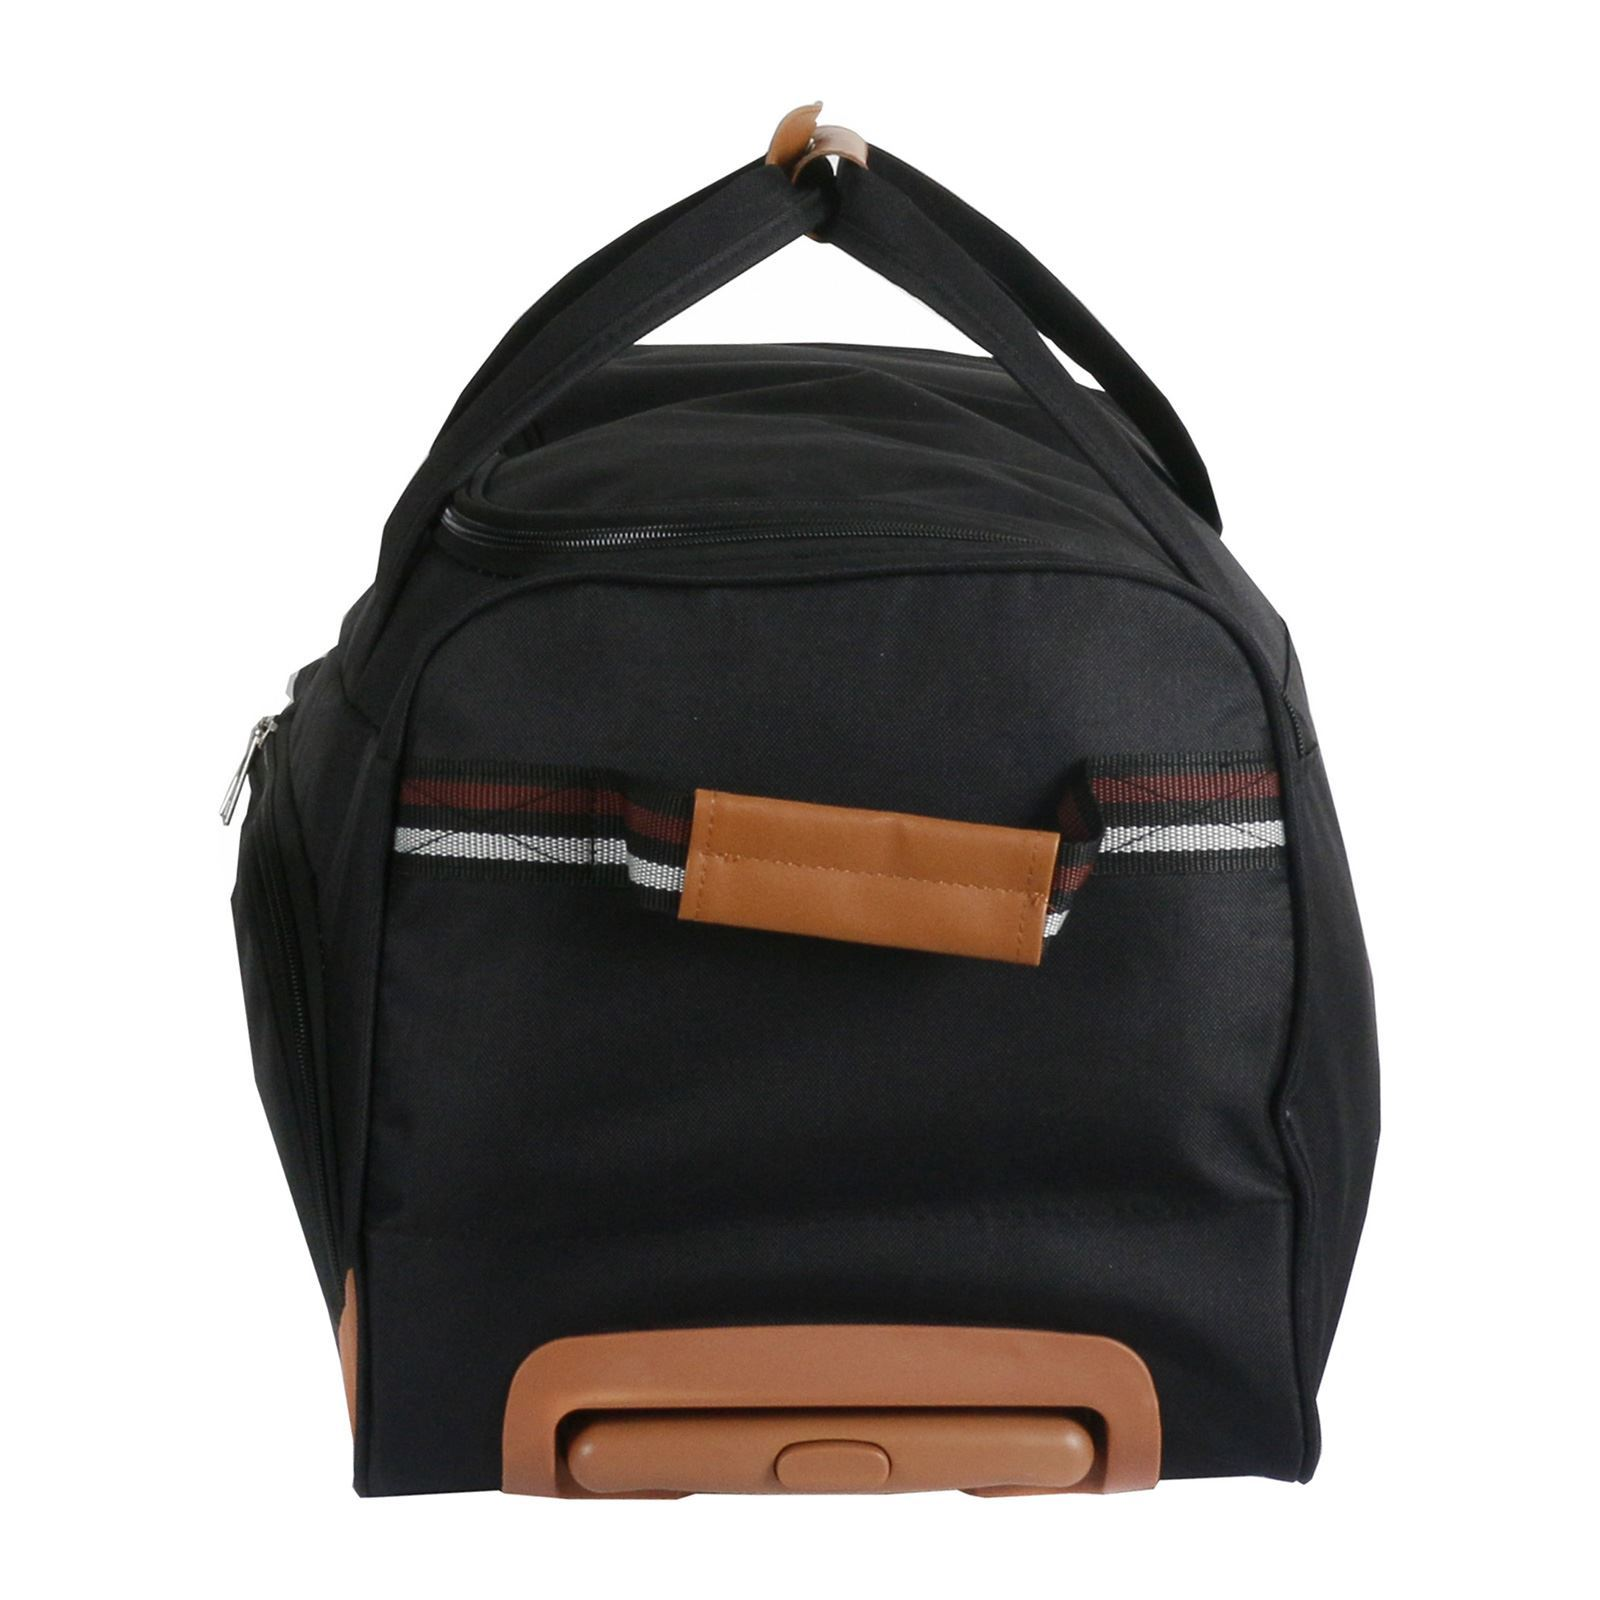 Farmer Sac Gentleman NoirBrandalley Small Alexander u5FK1cJ3Tl